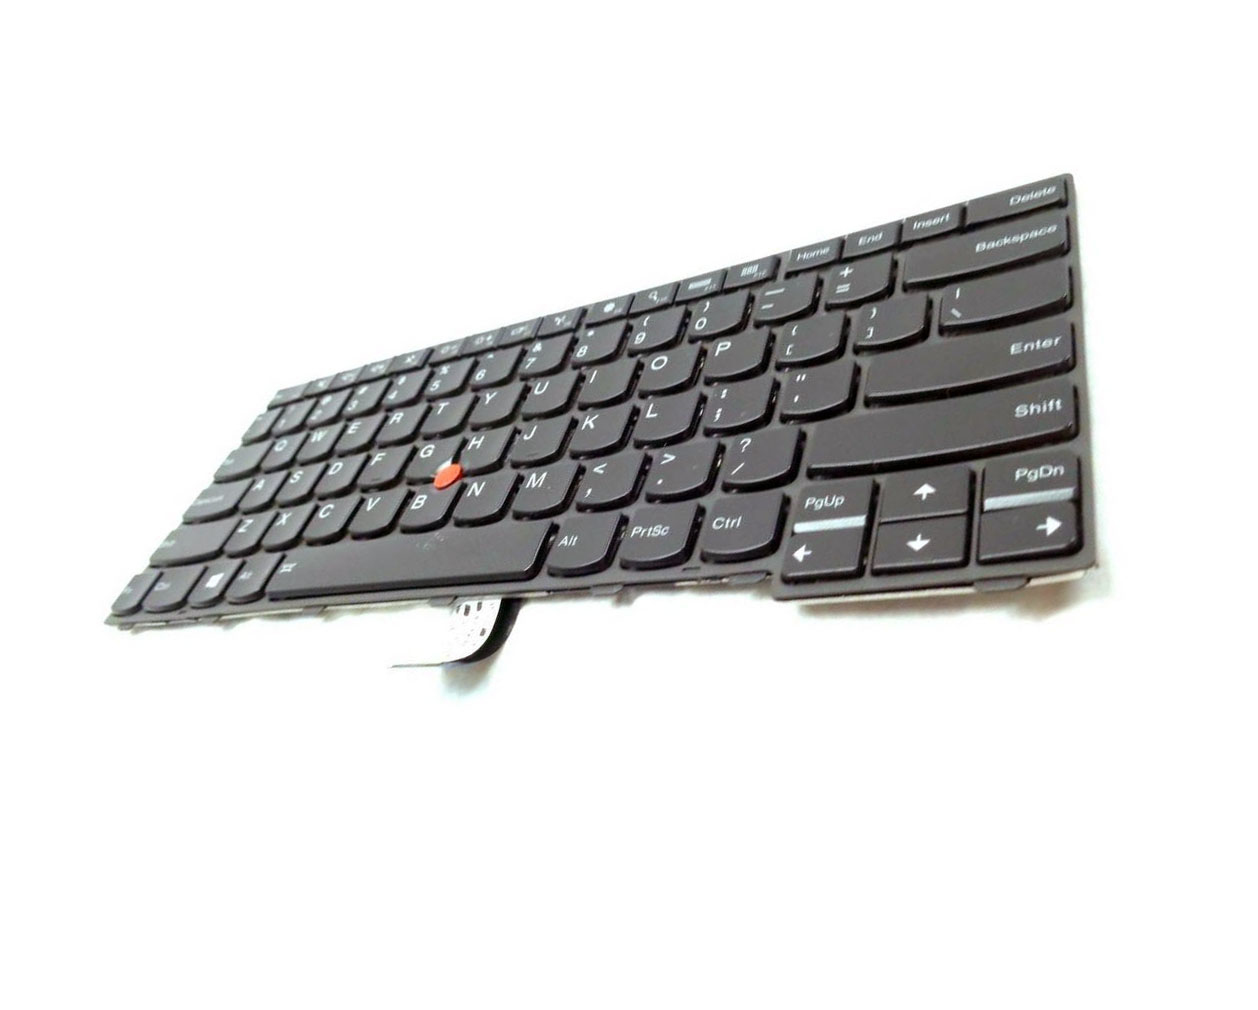 LENOVO 04X0111 KEYBOARD NOTEBOOK SPARE PART